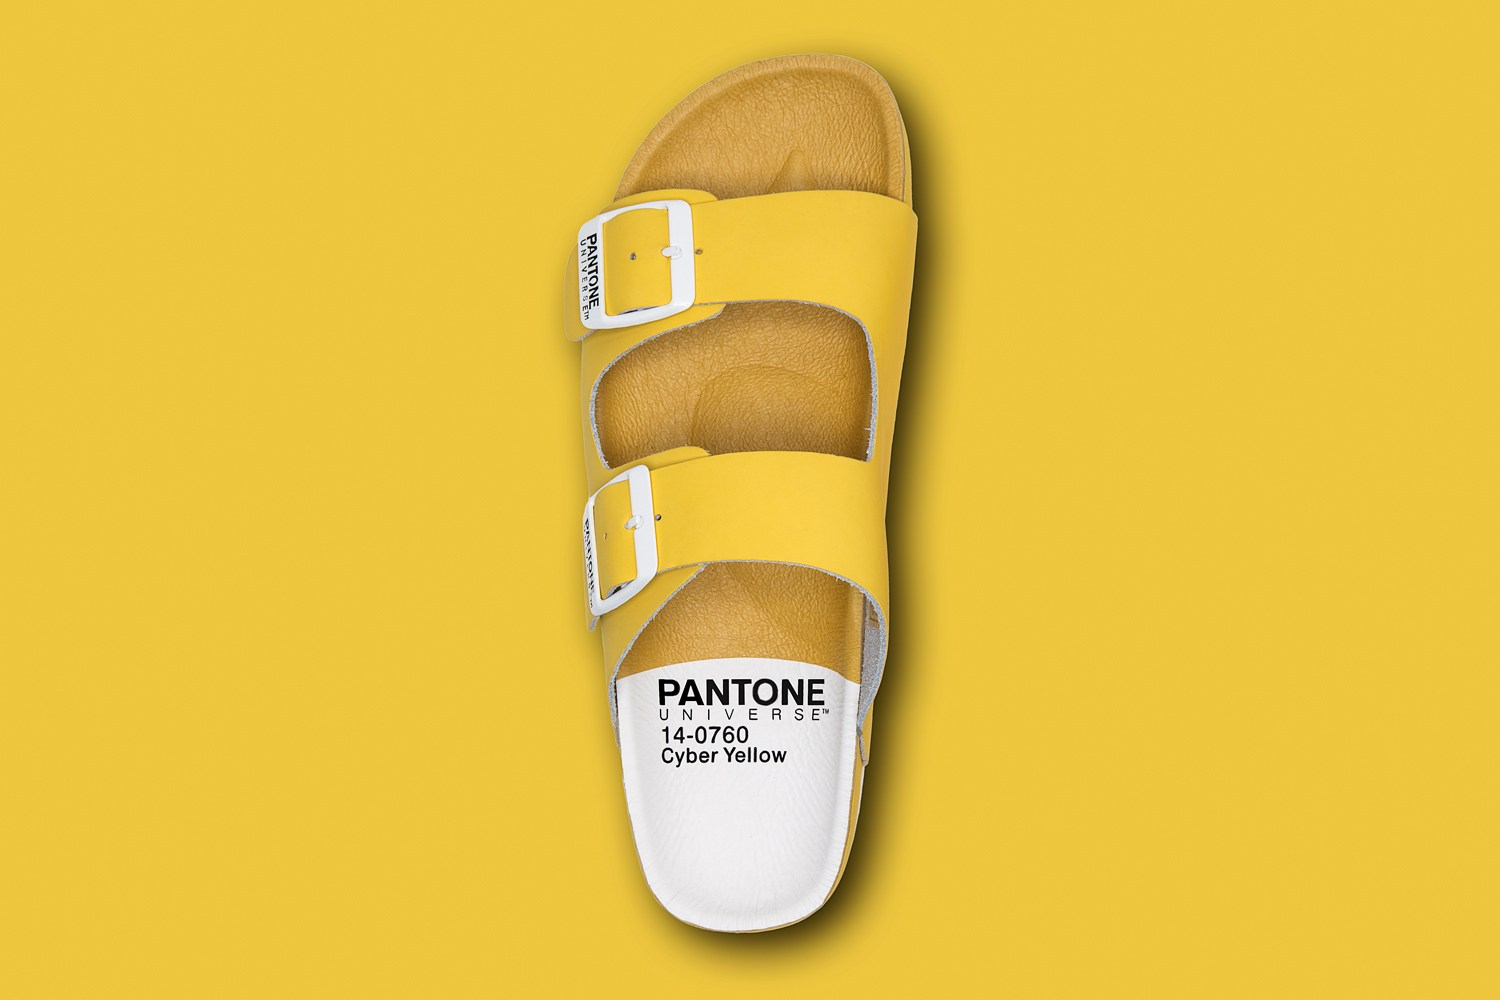 pantone-universe-footwear-2016-spring-summer-collection-03.jpg